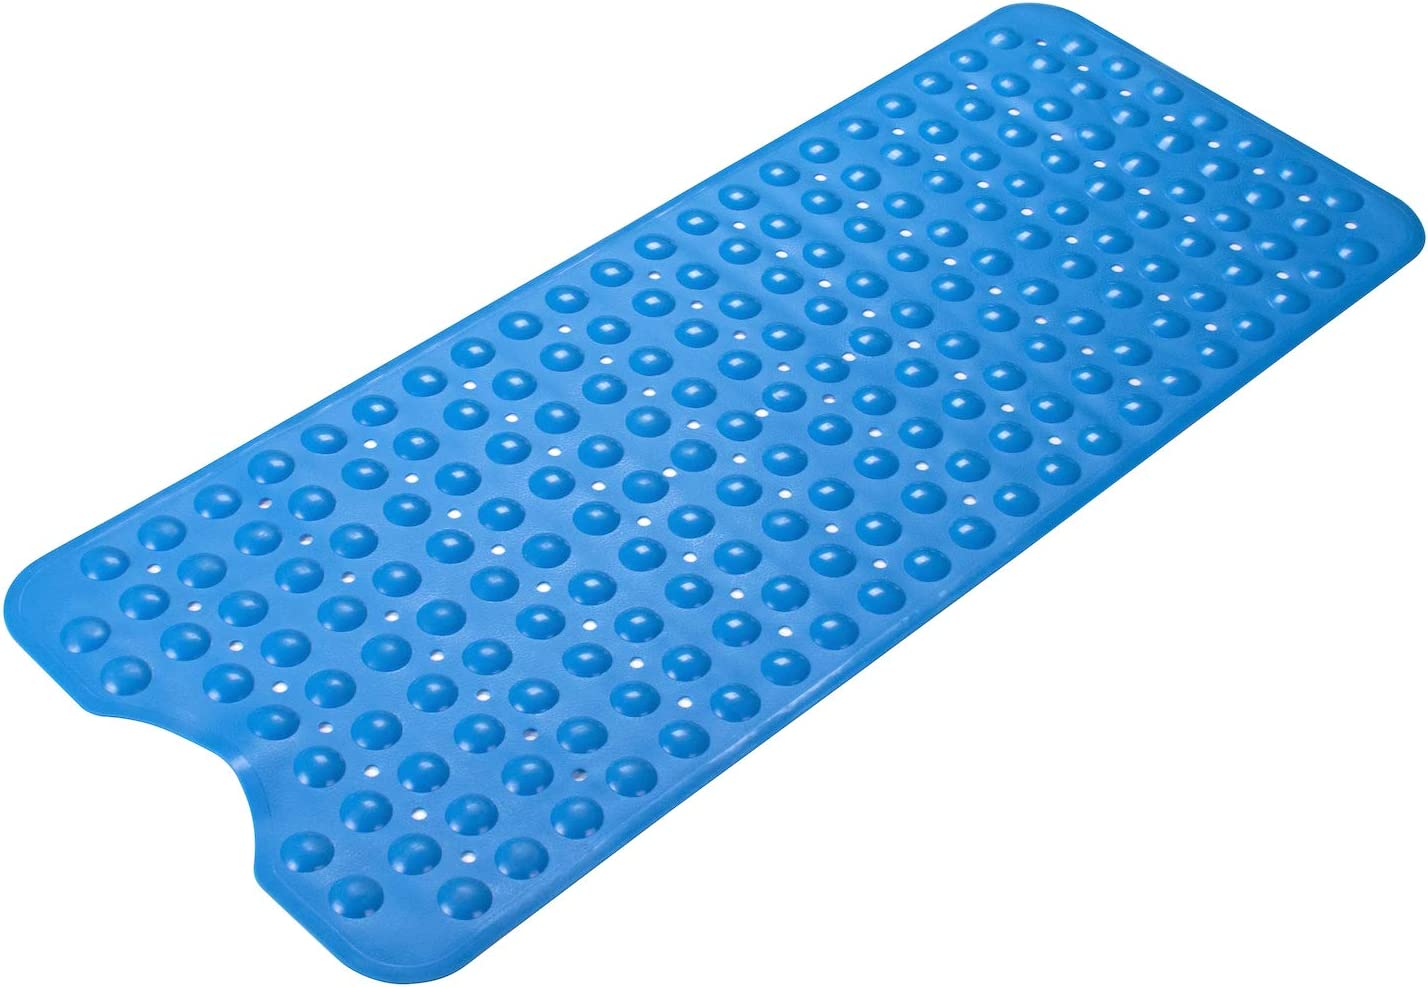 AmazerBath Bath Tub Mat, Larger Suction Cups Bath Mats with Strong Grip, Safe TPE Material, Machine Washable, Non-Slip Shower Mats for Bathroom, 39 x 16 Inches (Blue): Home & Kitchen